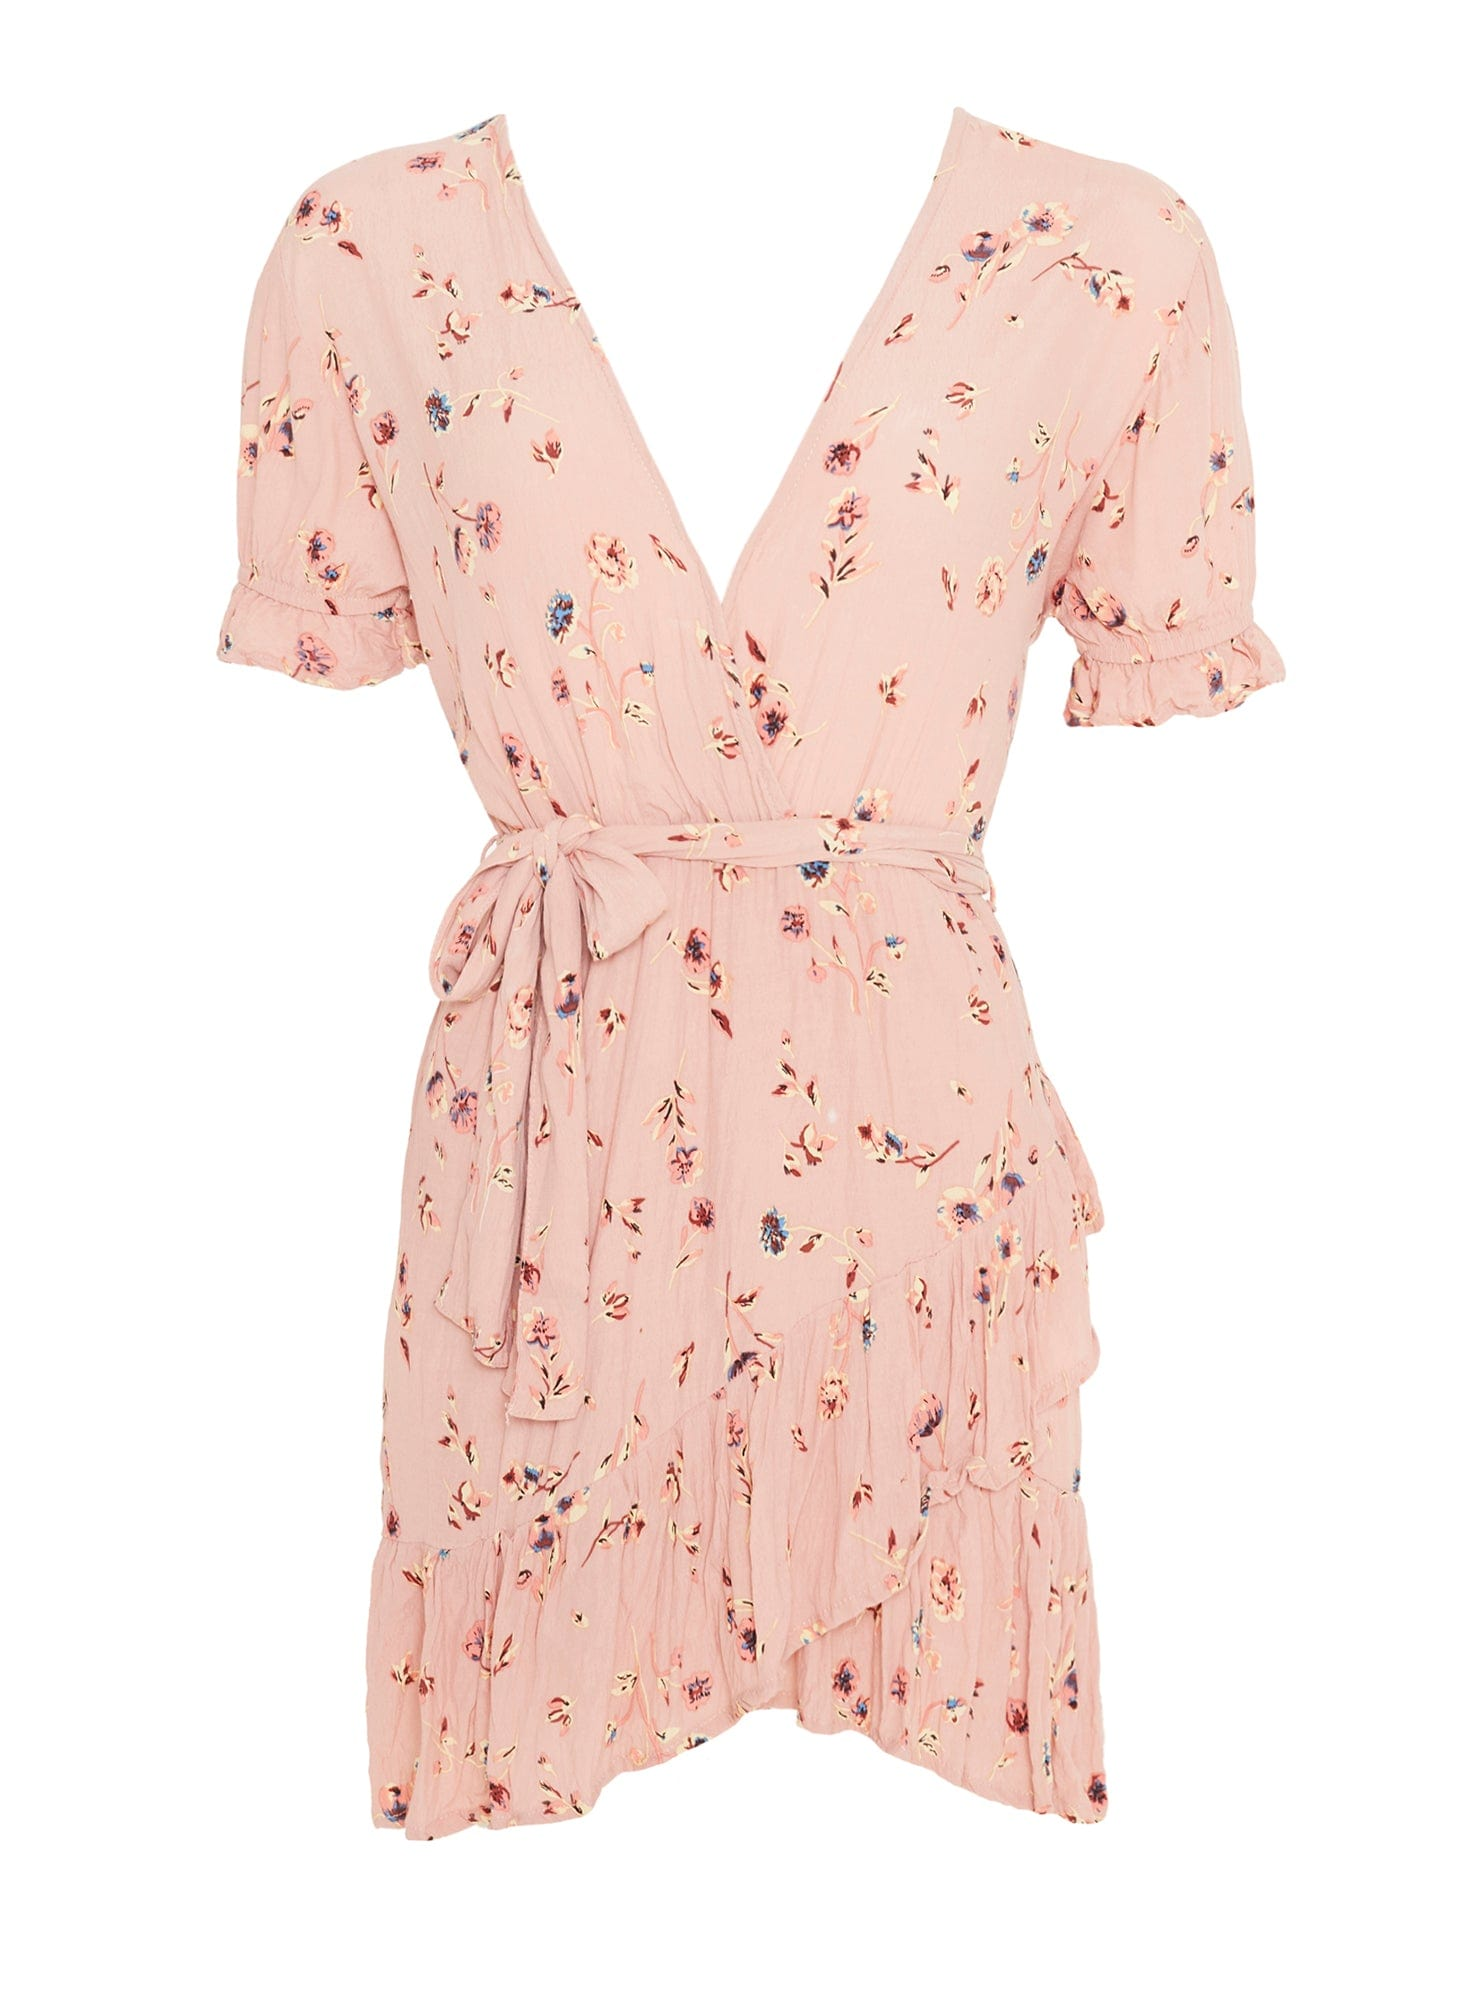 SALINA FLORAL PRINT - LE MOULIN DRESS